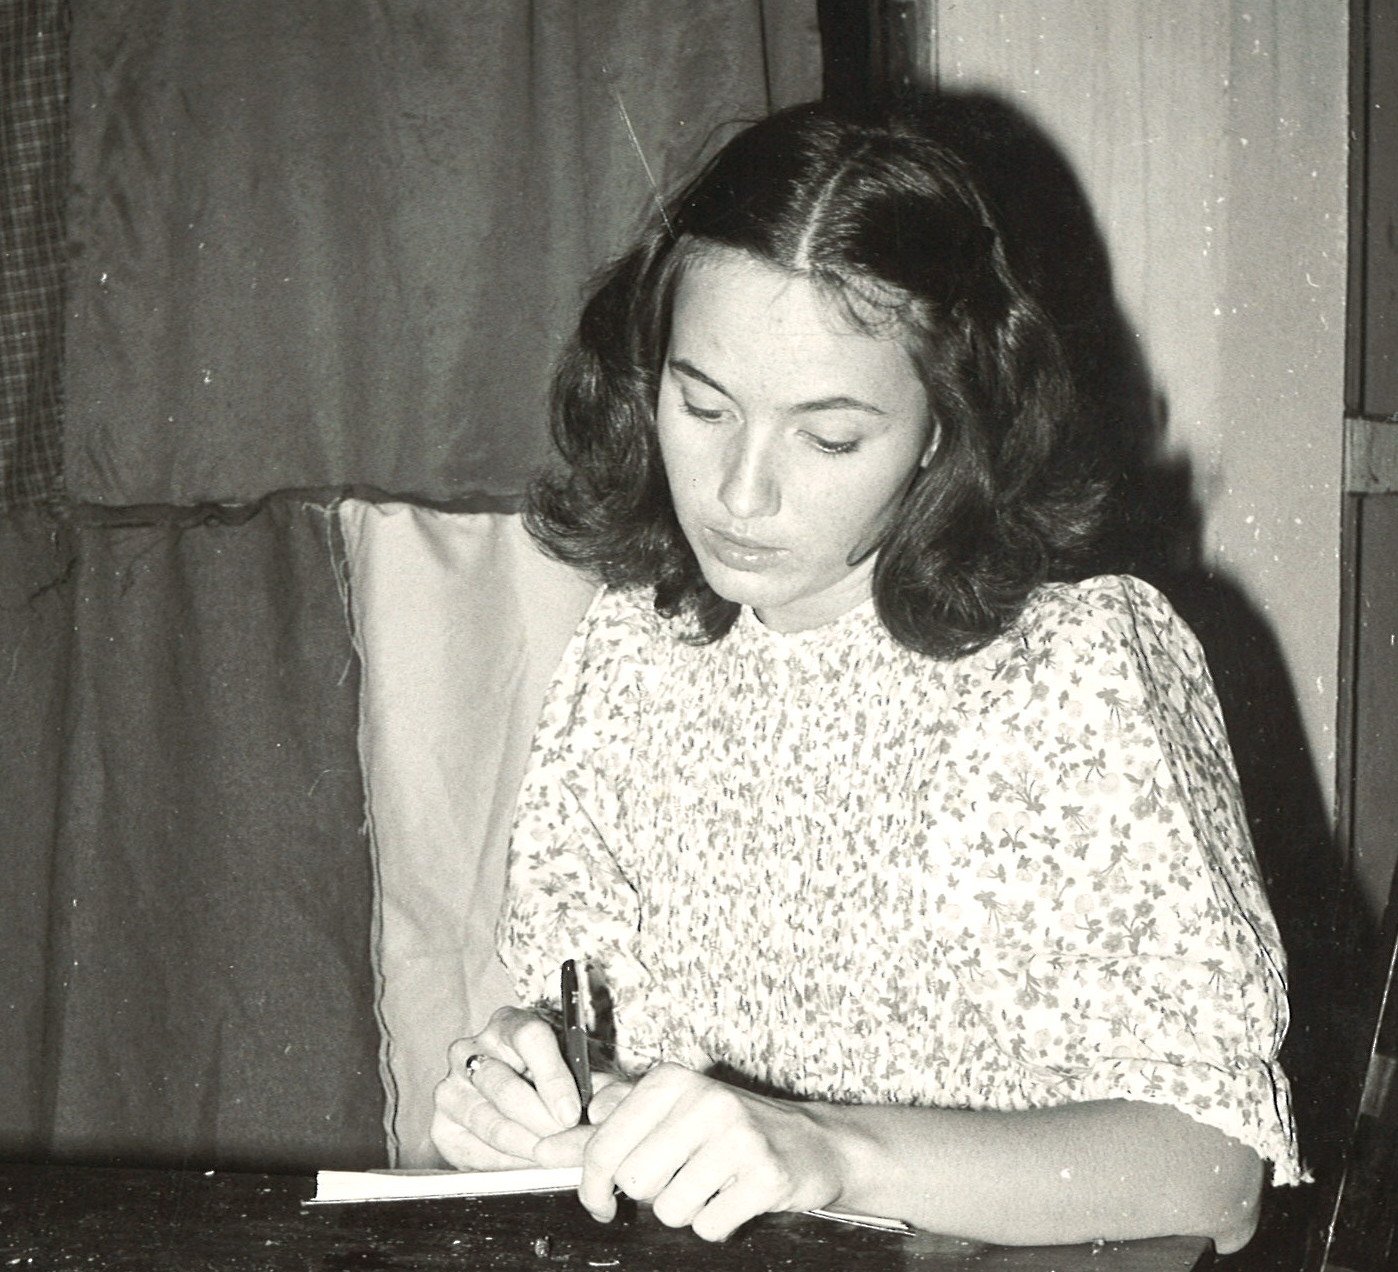 1973--The Diary of Anne Frank